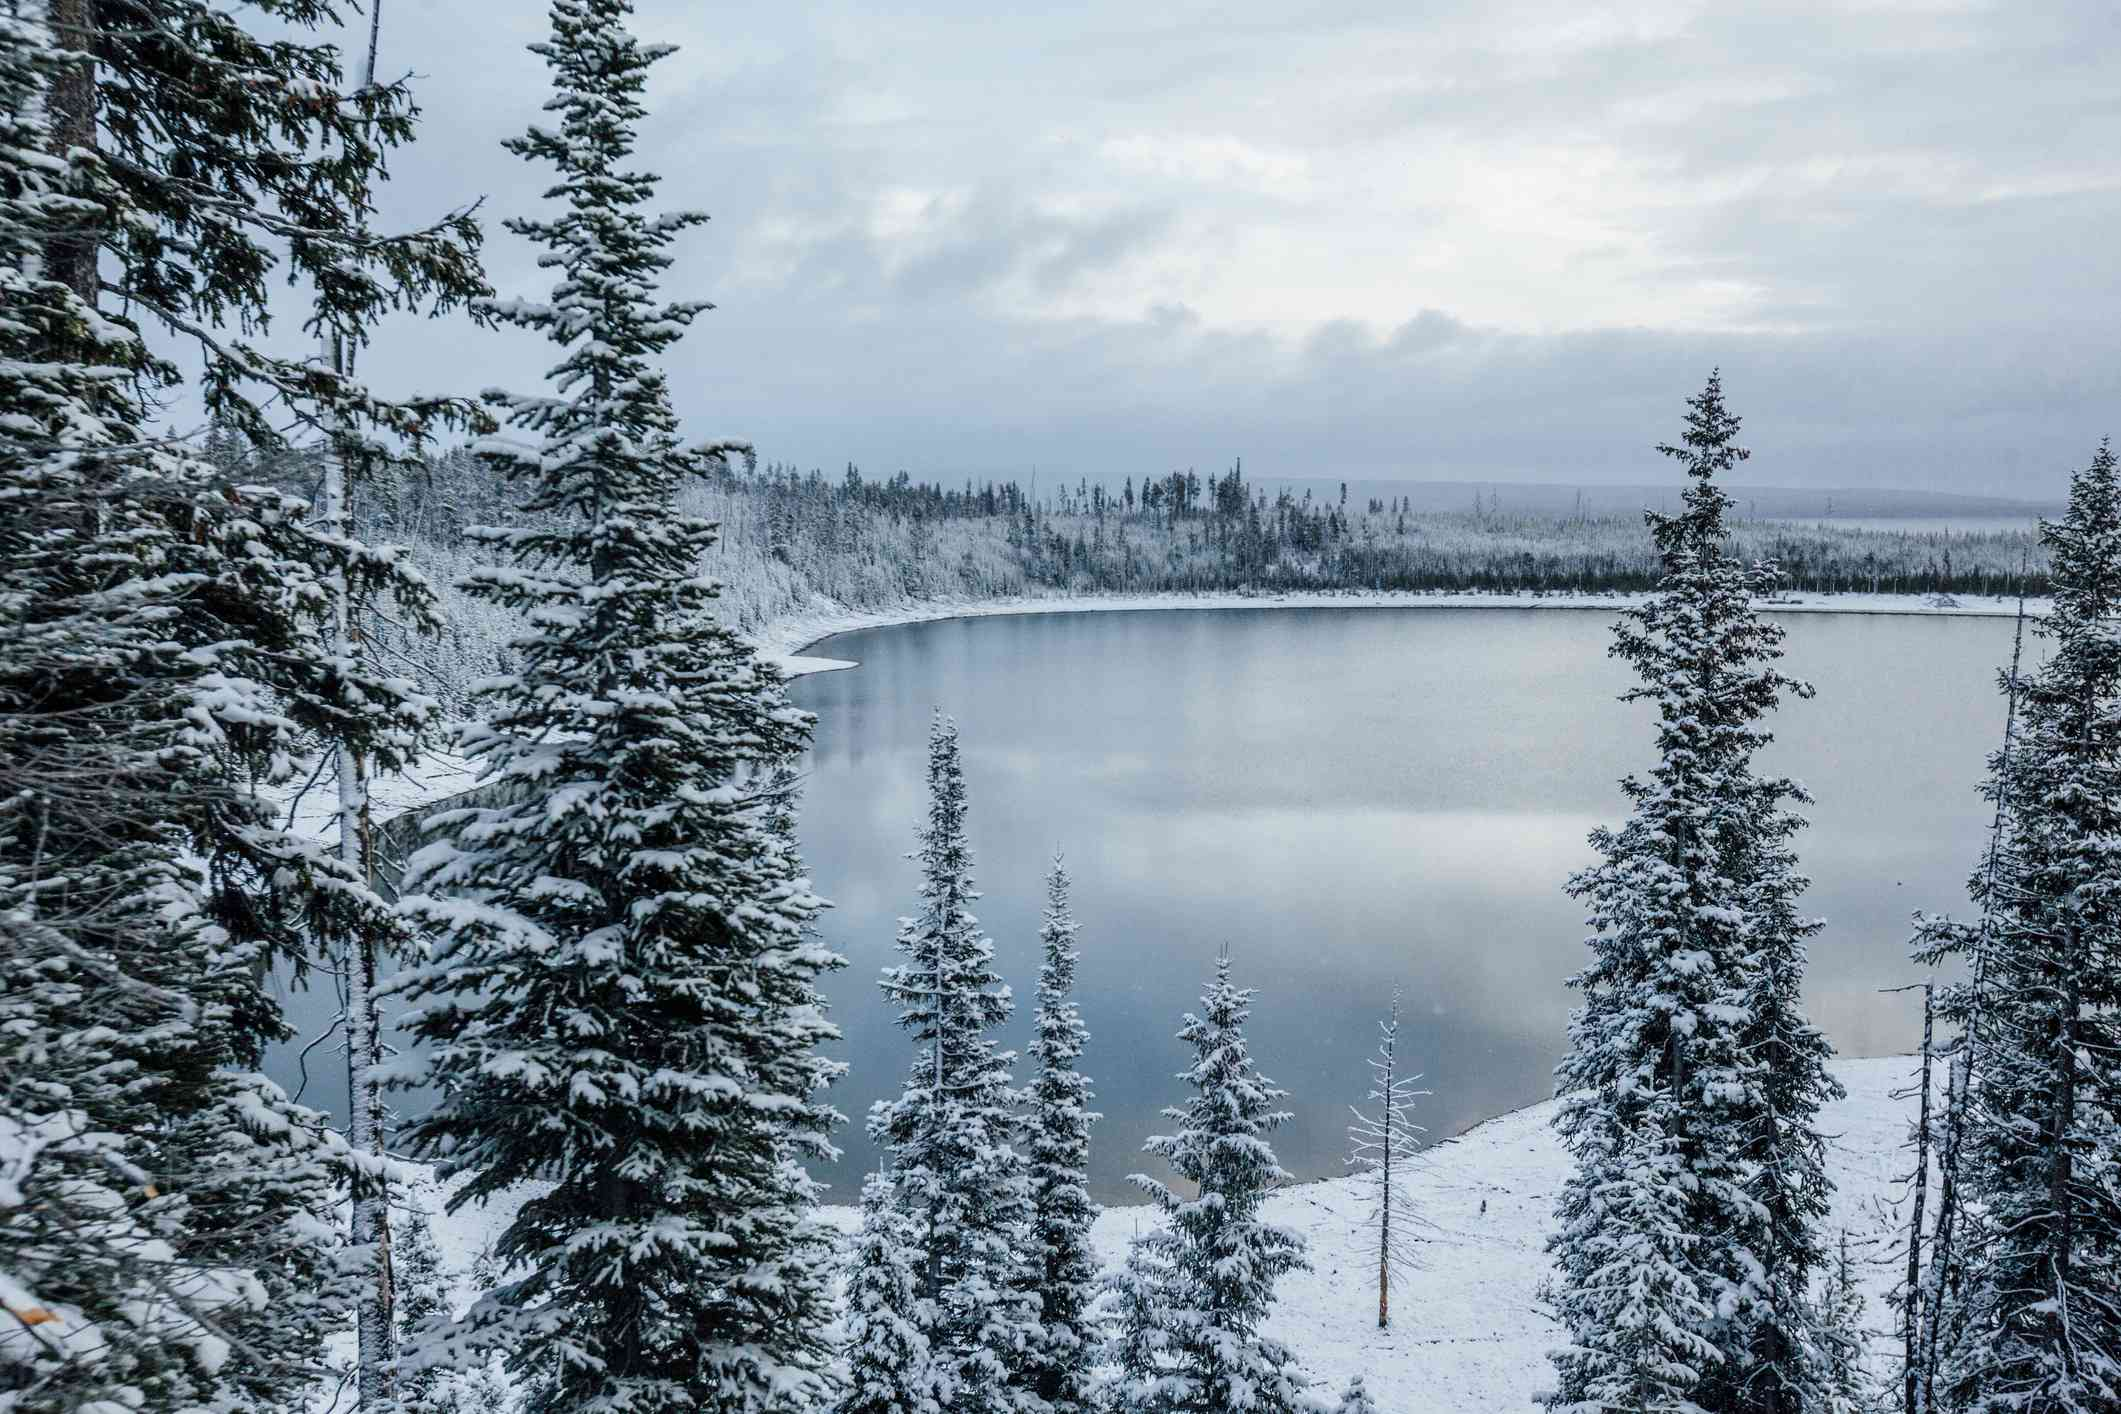 Yellowstone Lake freezes over in winter